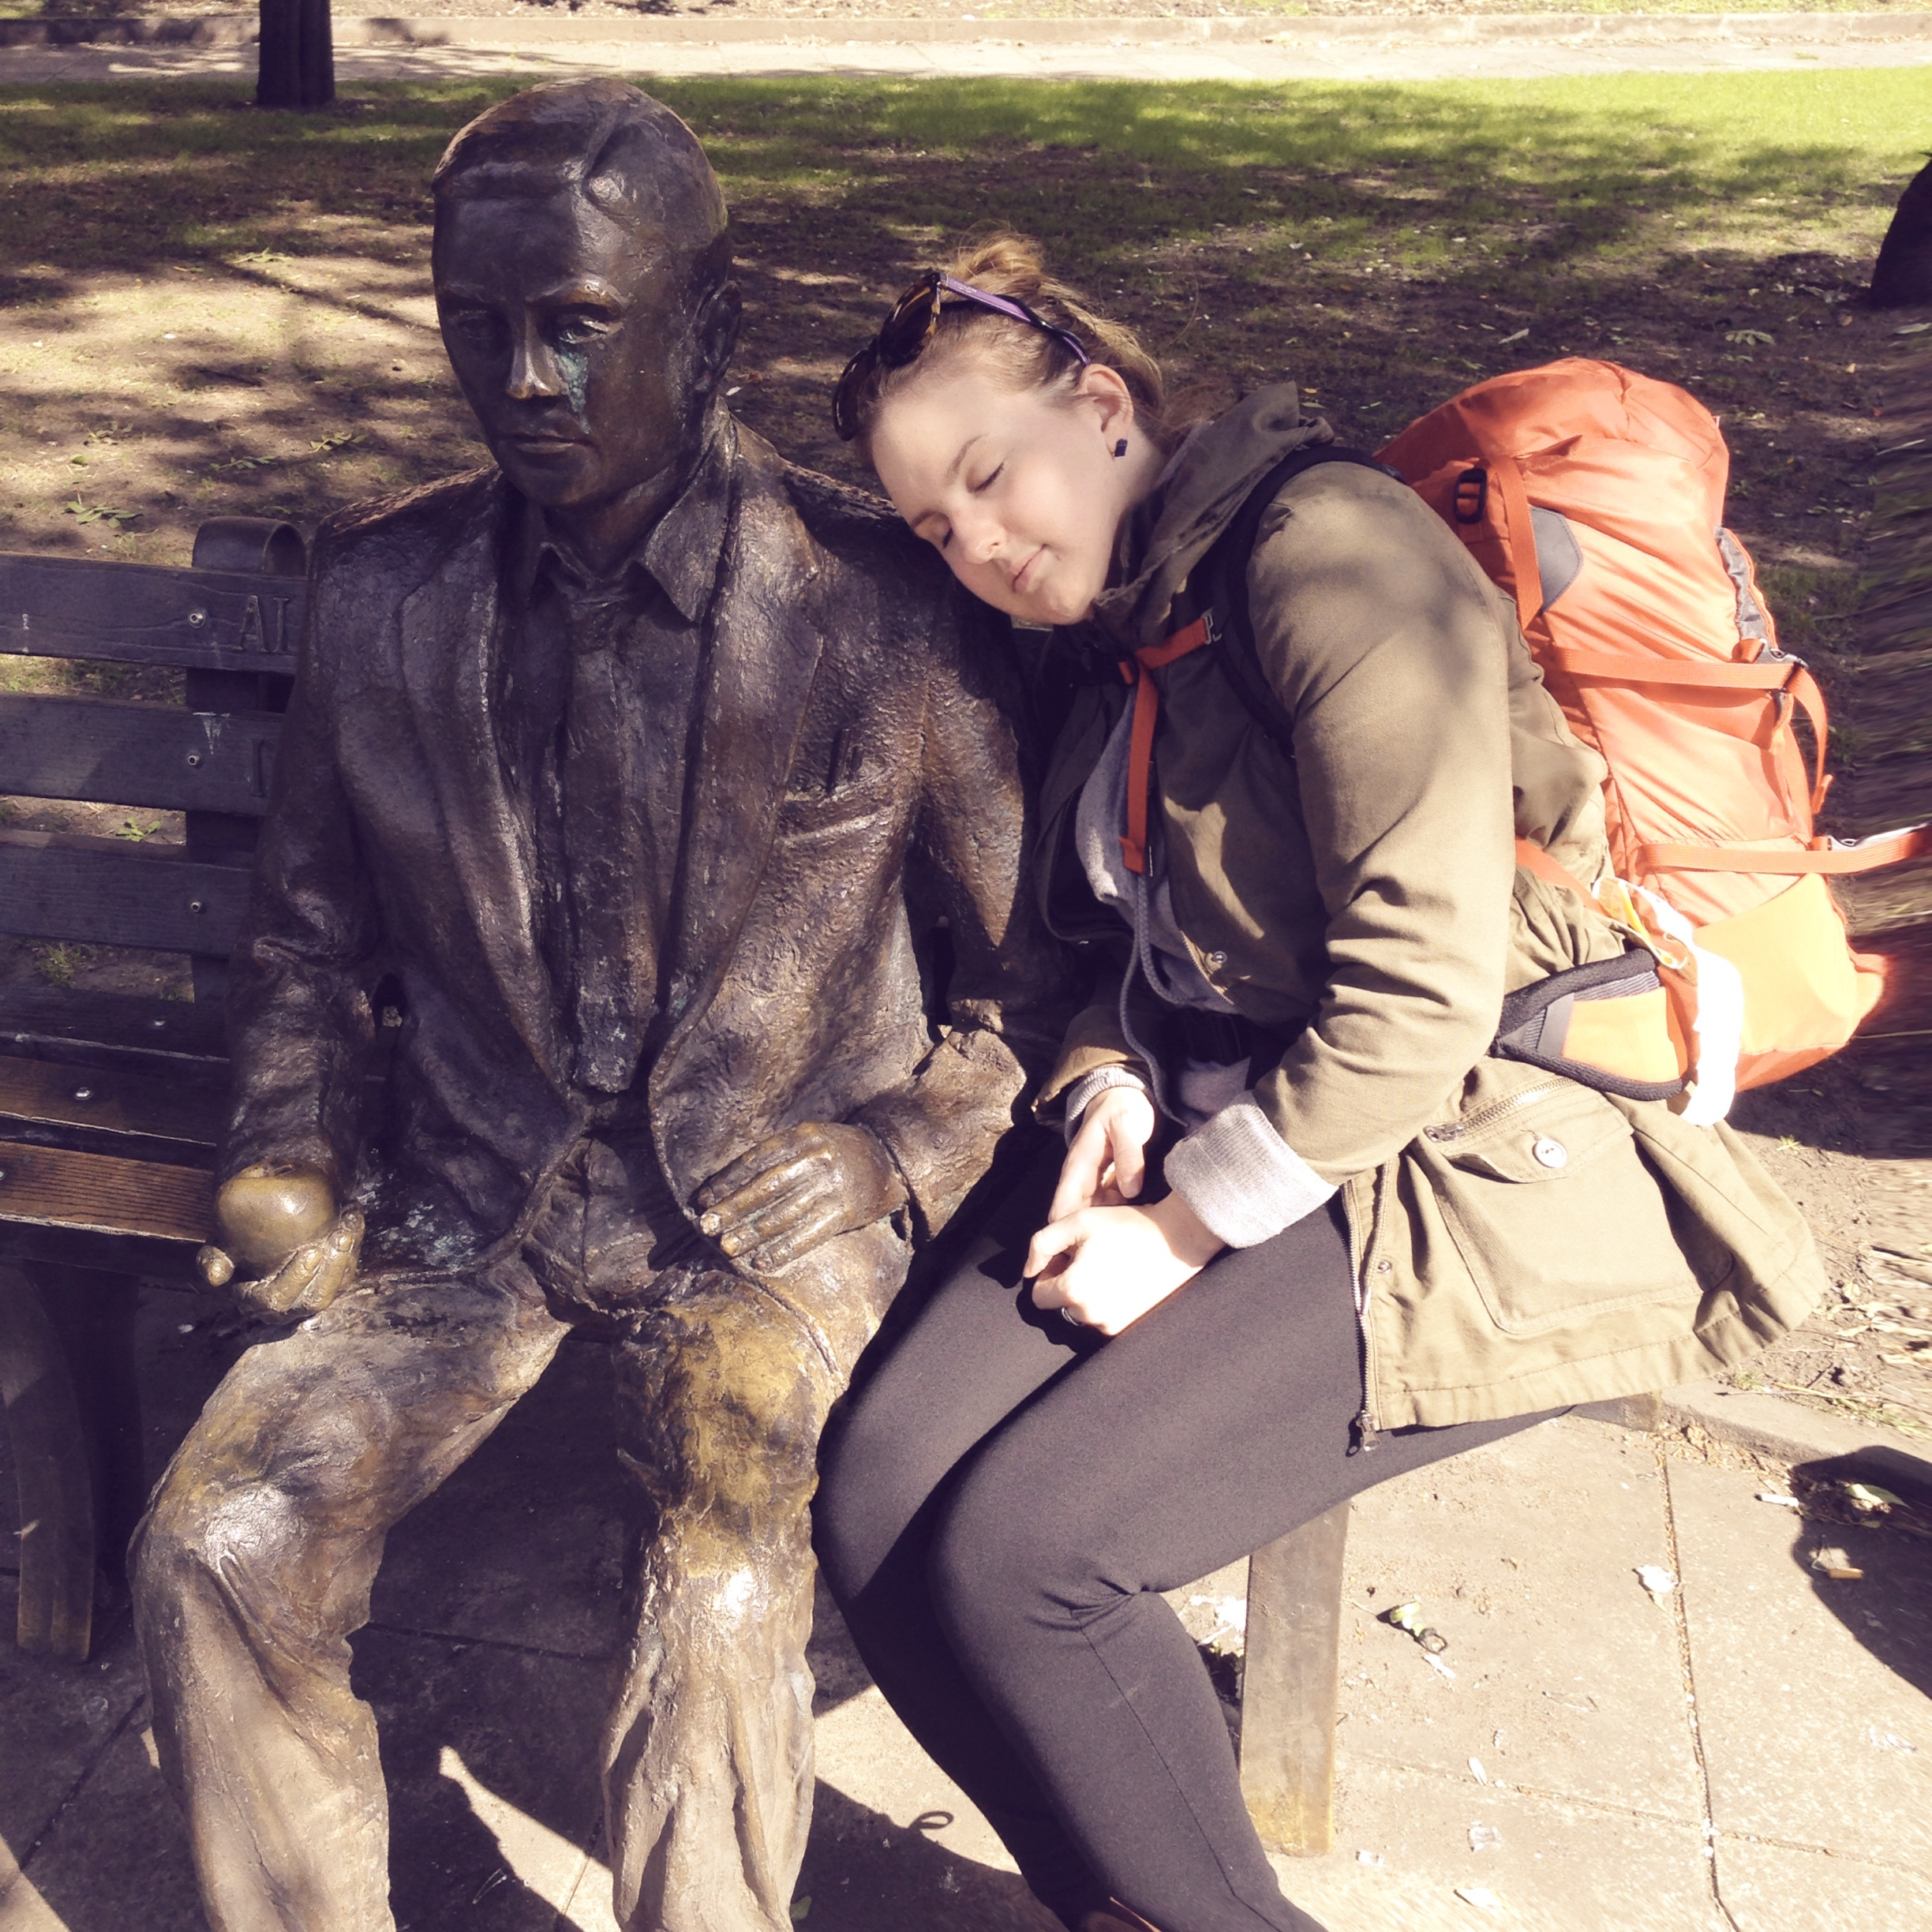 Taking a nap on Alan Turing's shoulder.